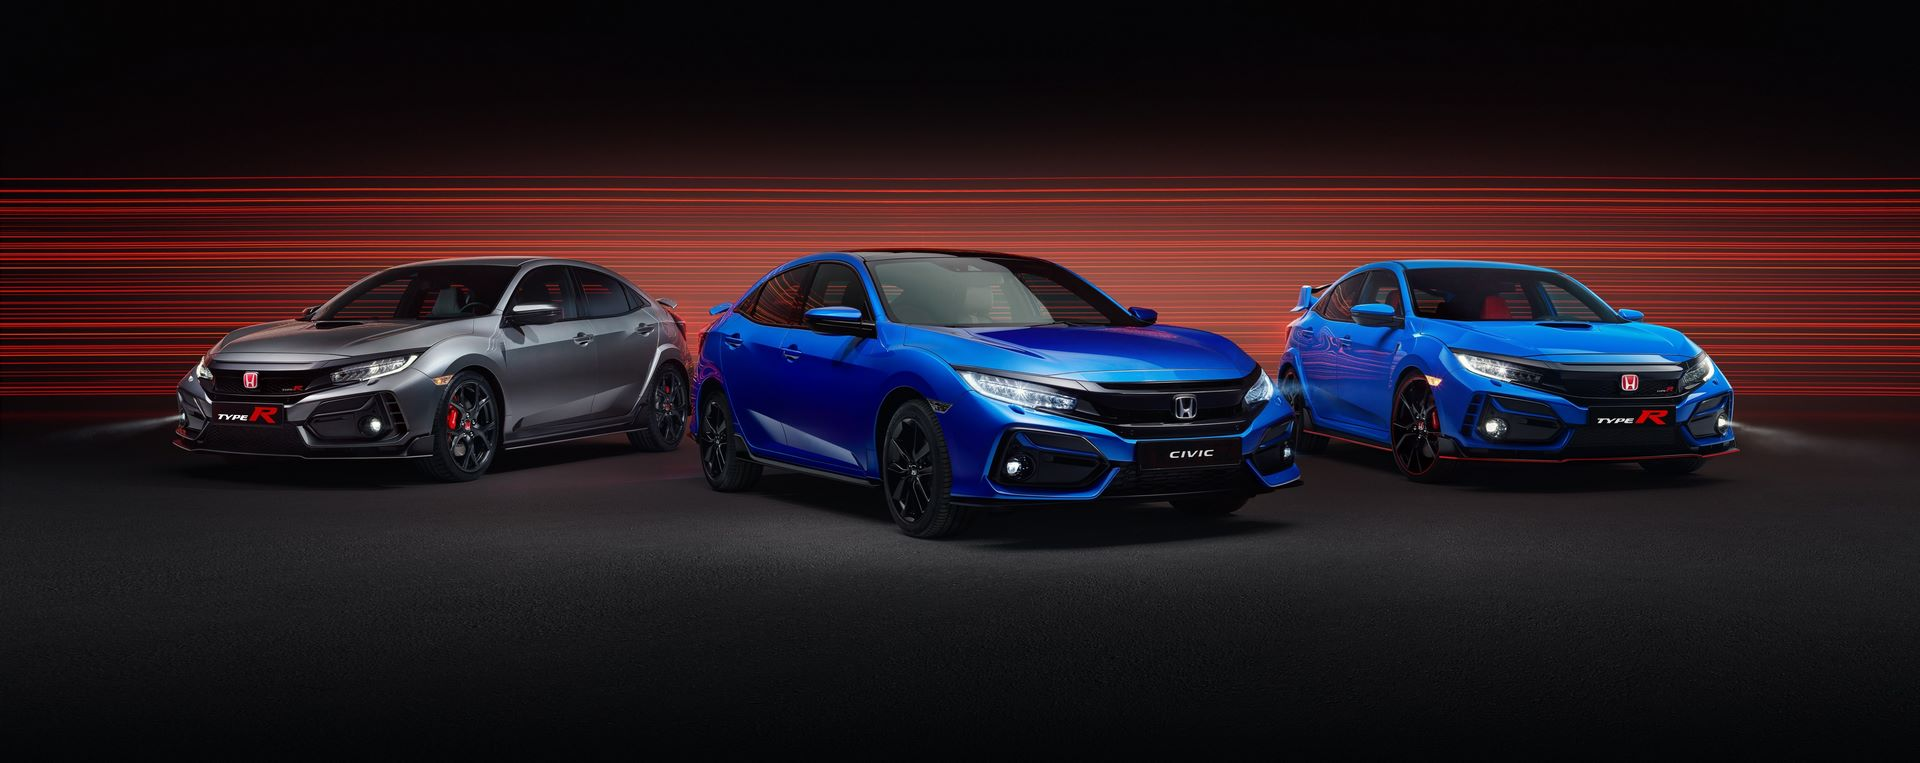 2020 Civic Type R Range - Type R Sport Line, Civic Sport Line, Type R GT